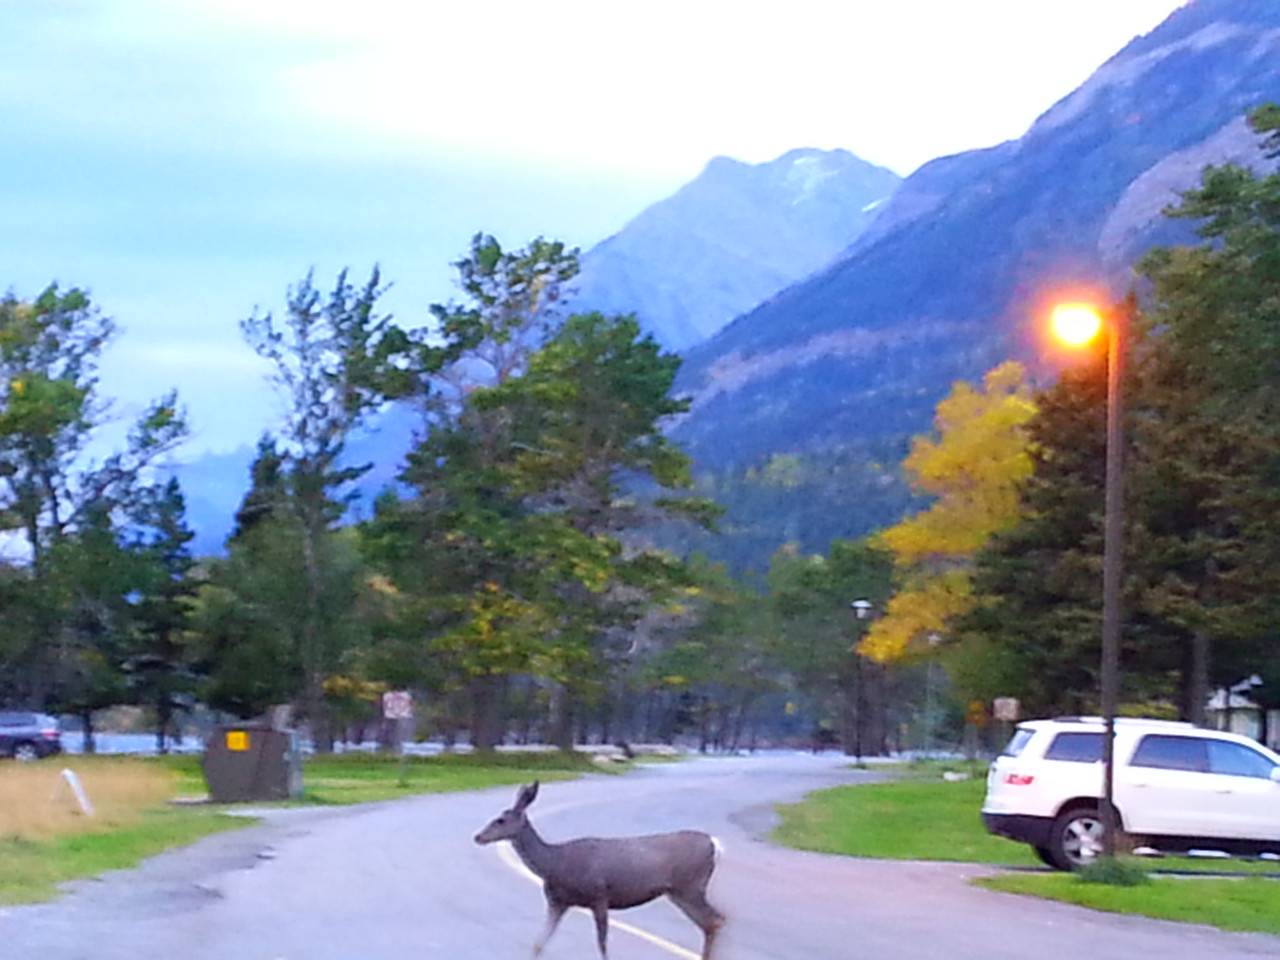 Waterton-deer out for a morning stroll